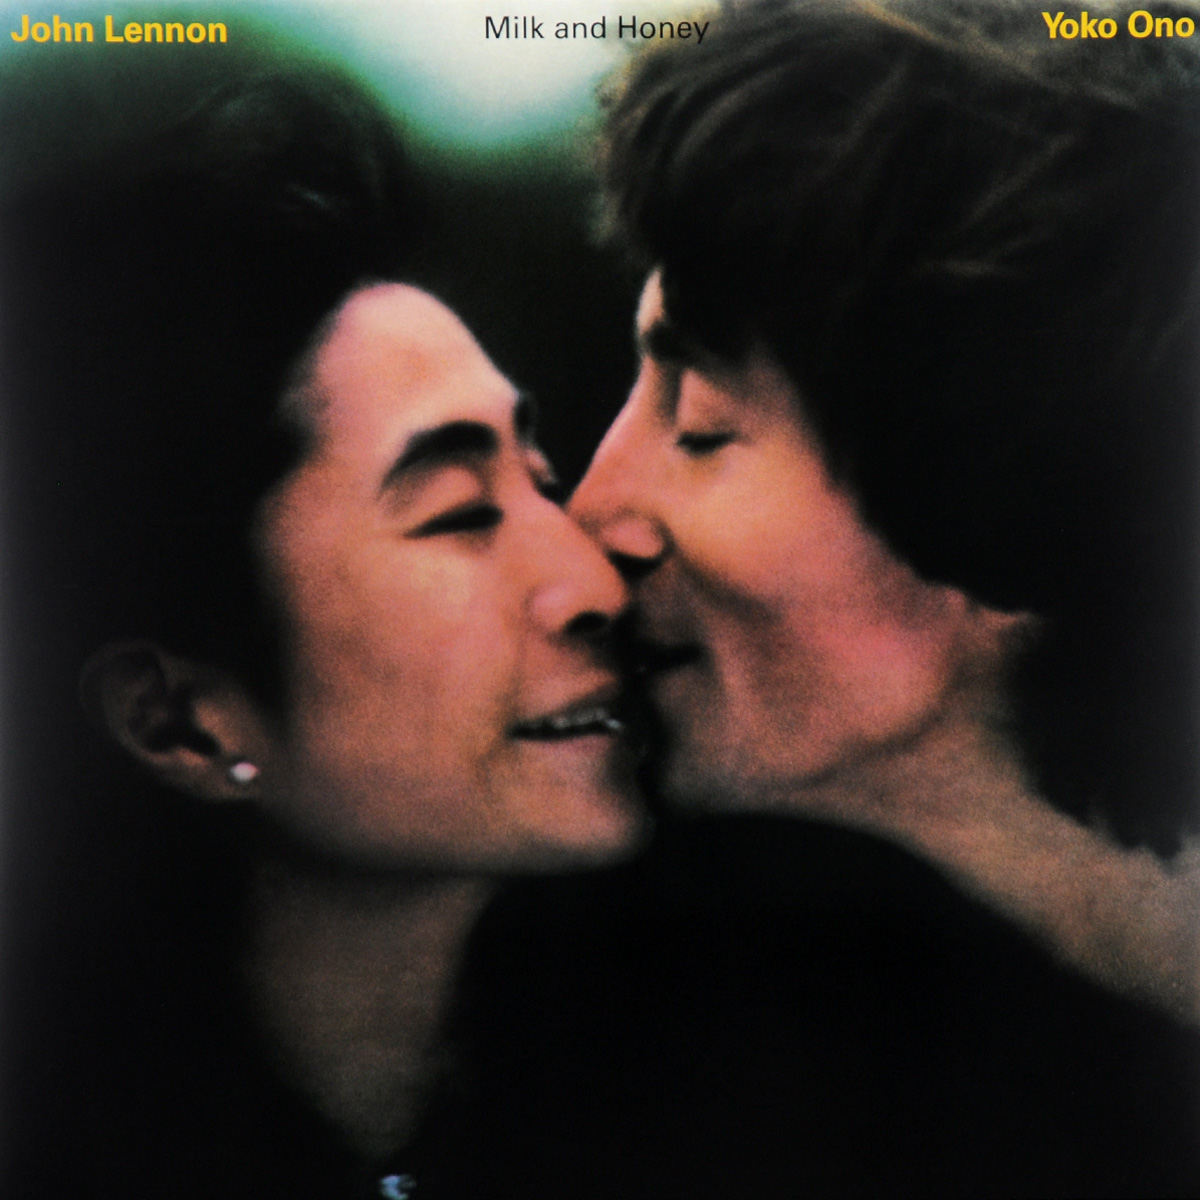 Джон Леннон,Йоко Оно John Lennon / Yoko Ono. Milk And Honey (LP) джон леннон john lennon lennon 9 lp